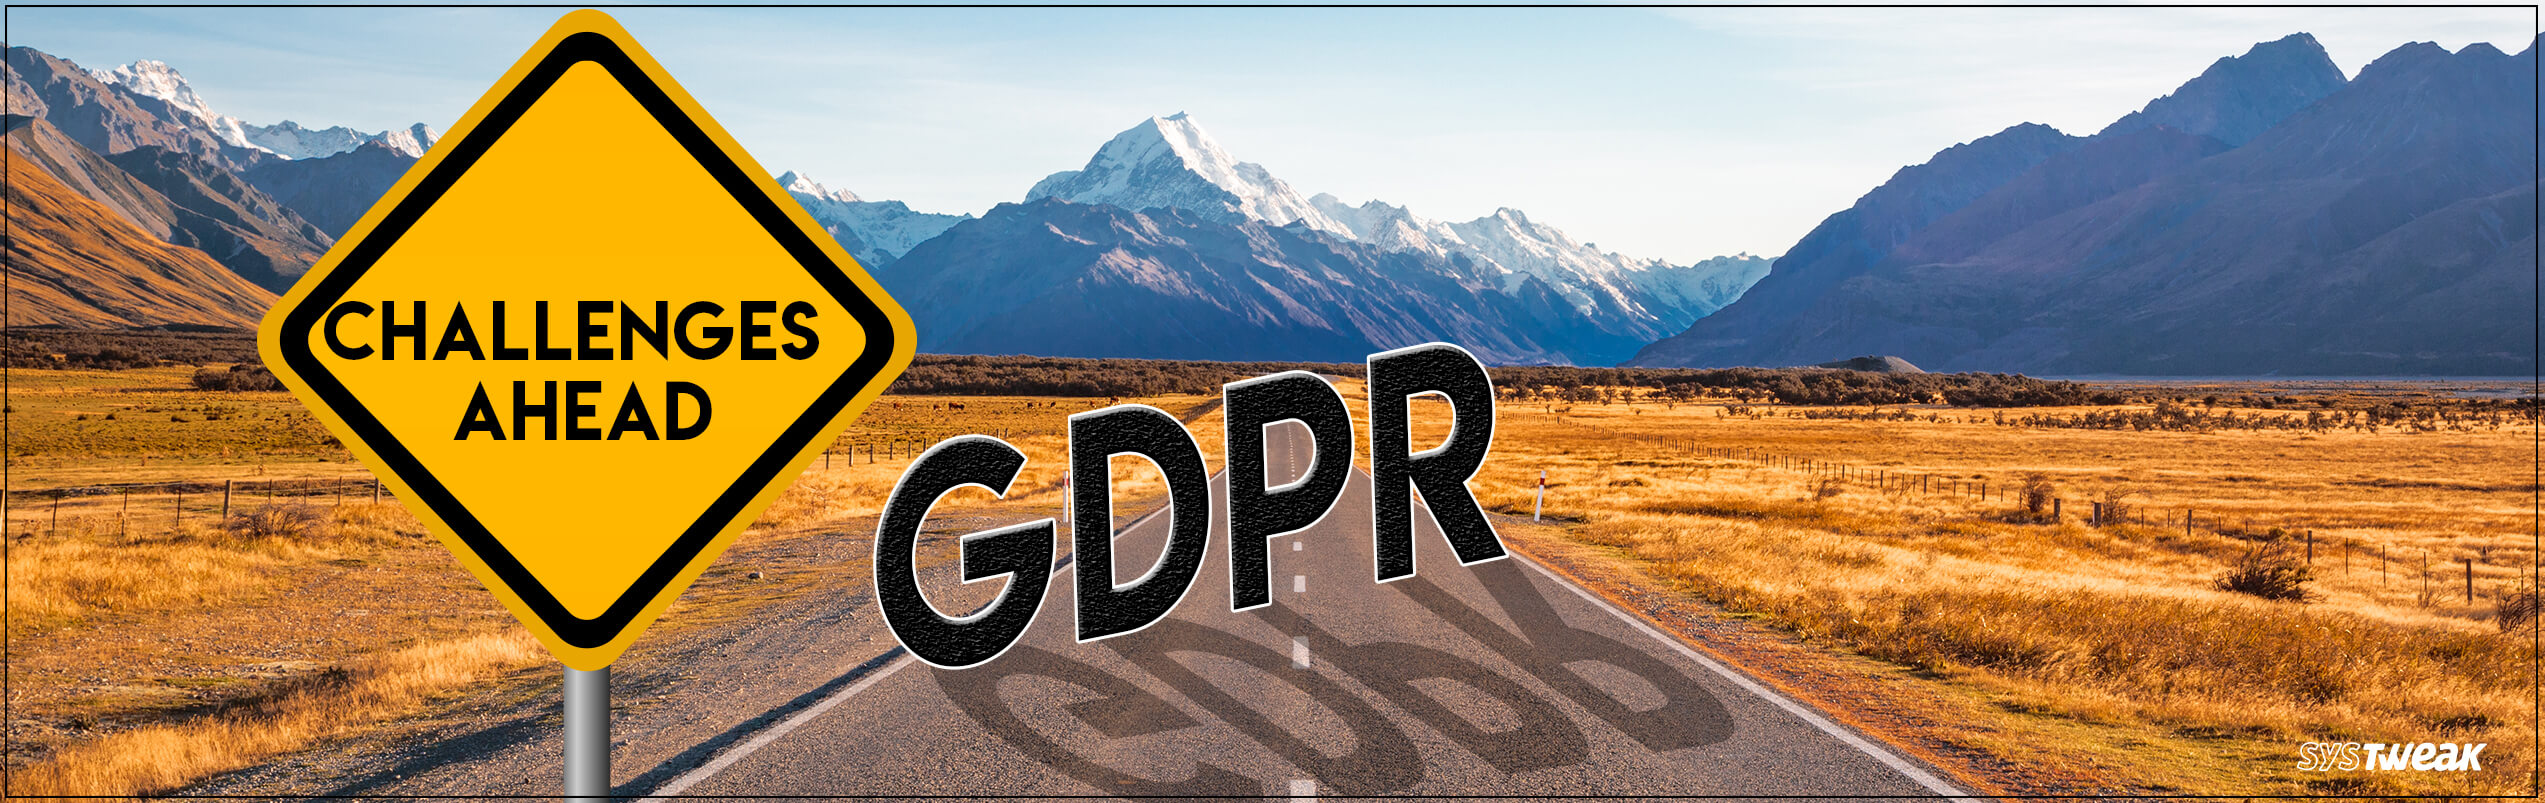 How GDPR is a True Challenge for Your Business?